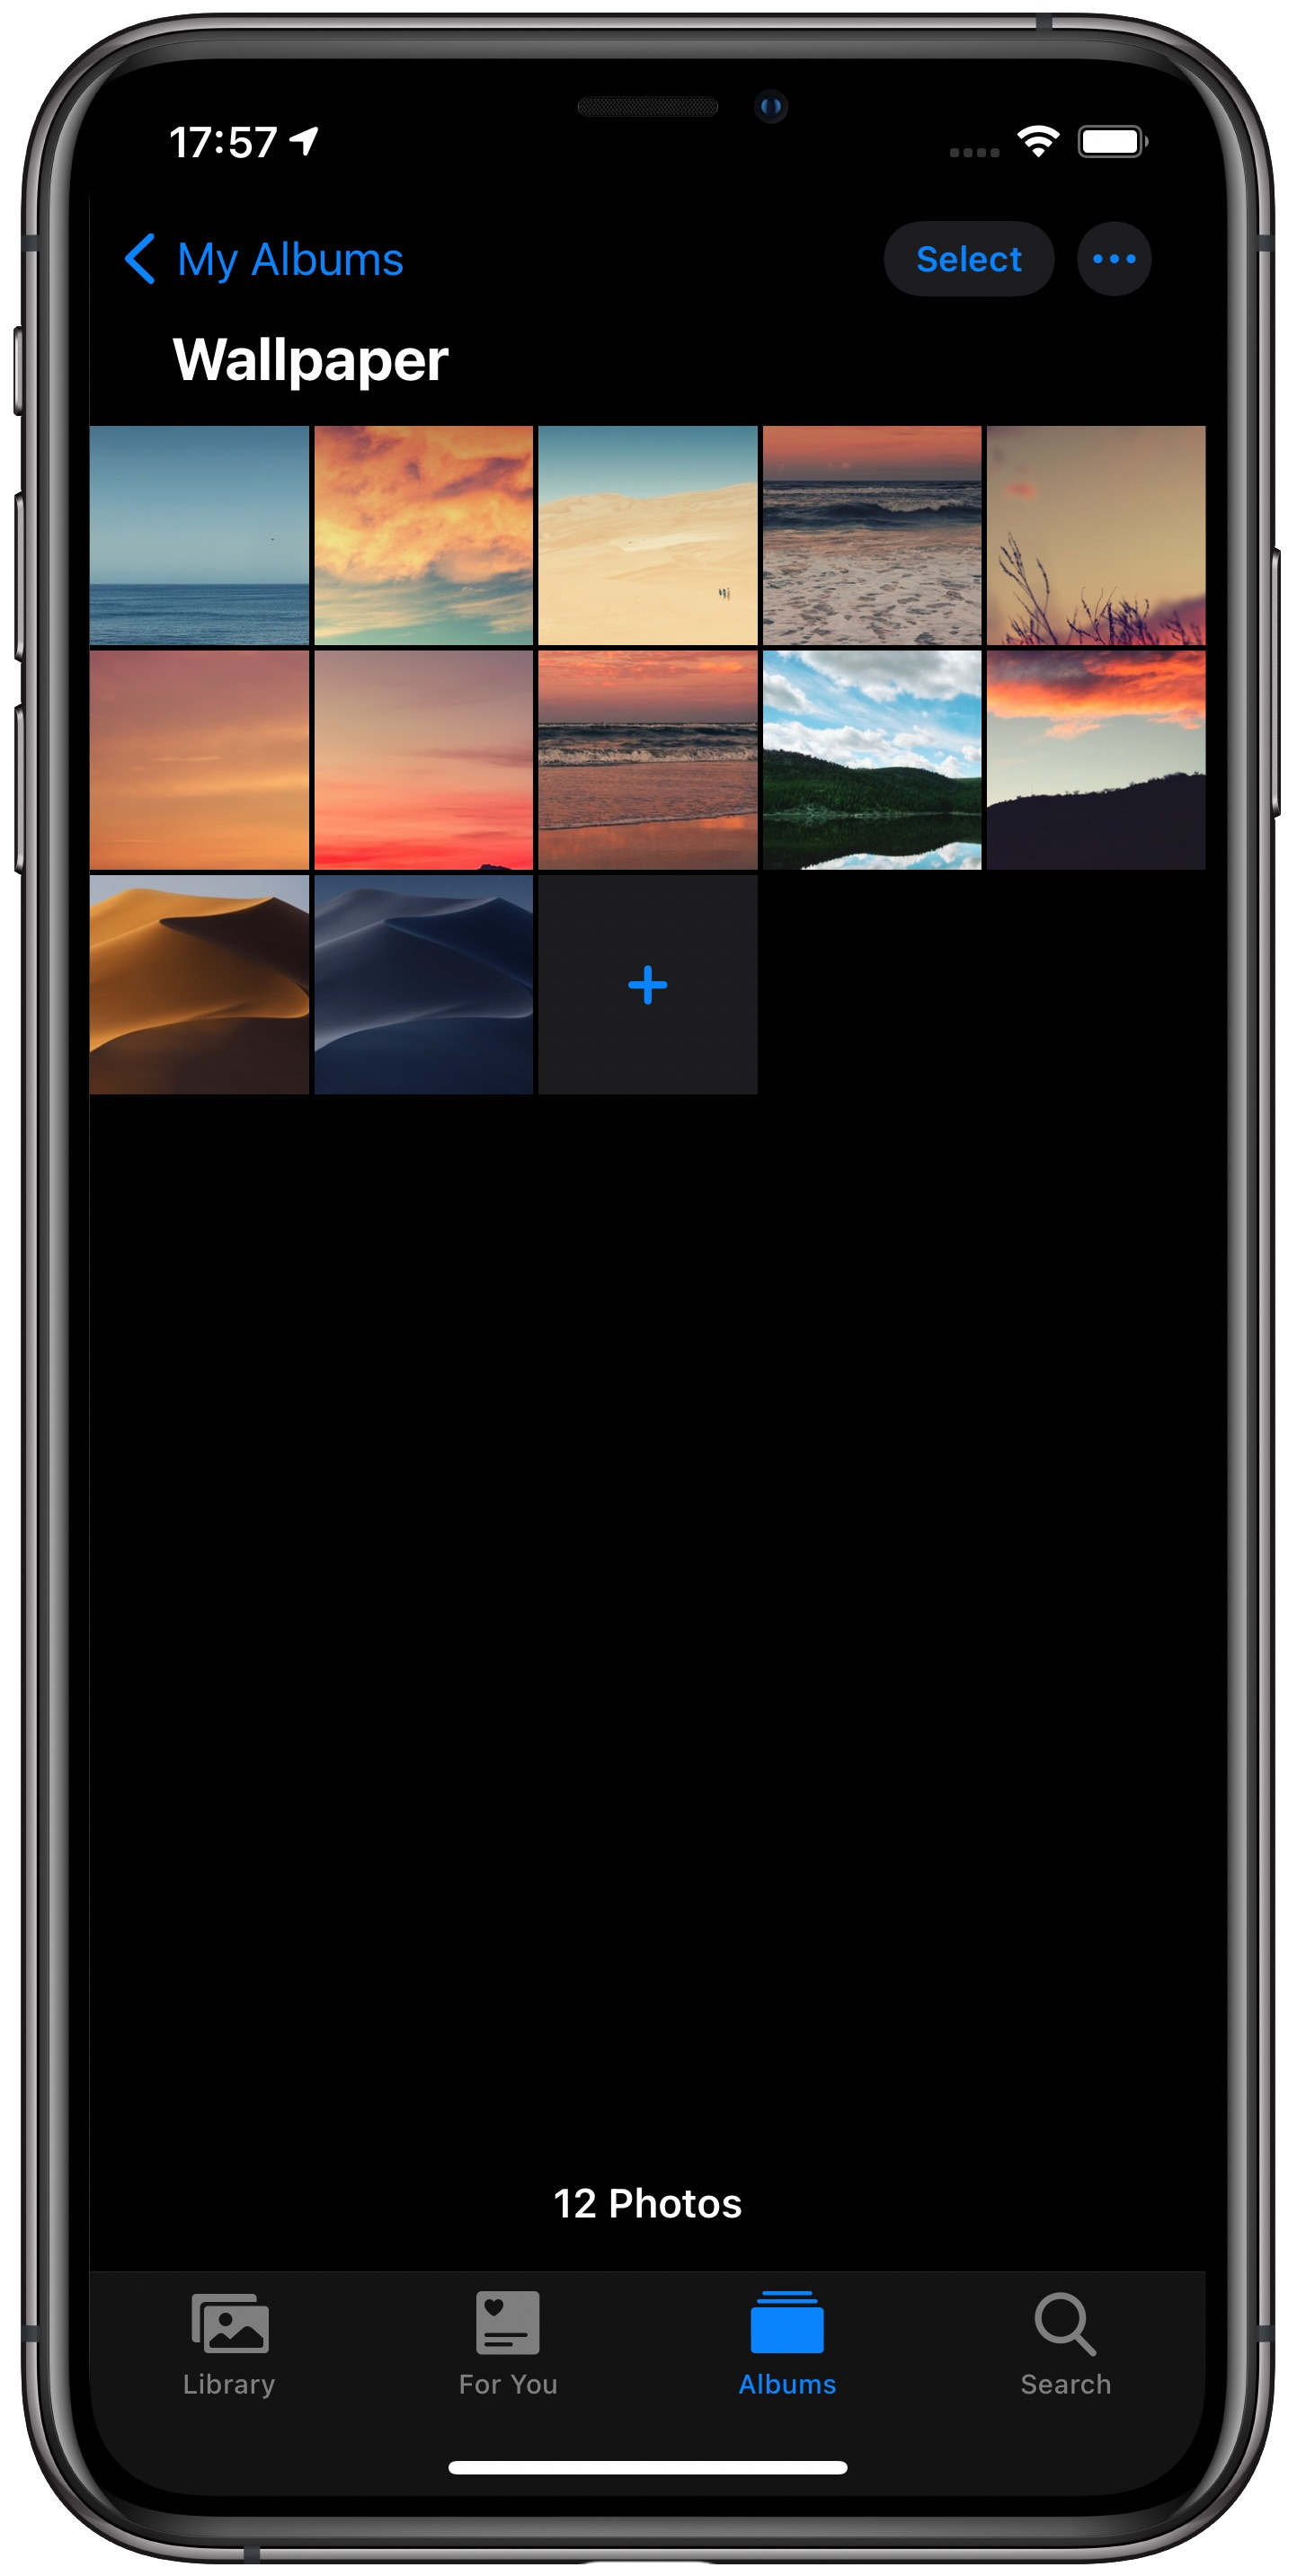 change iPhone wallpaper automatically - Photos app with Wallpaper album